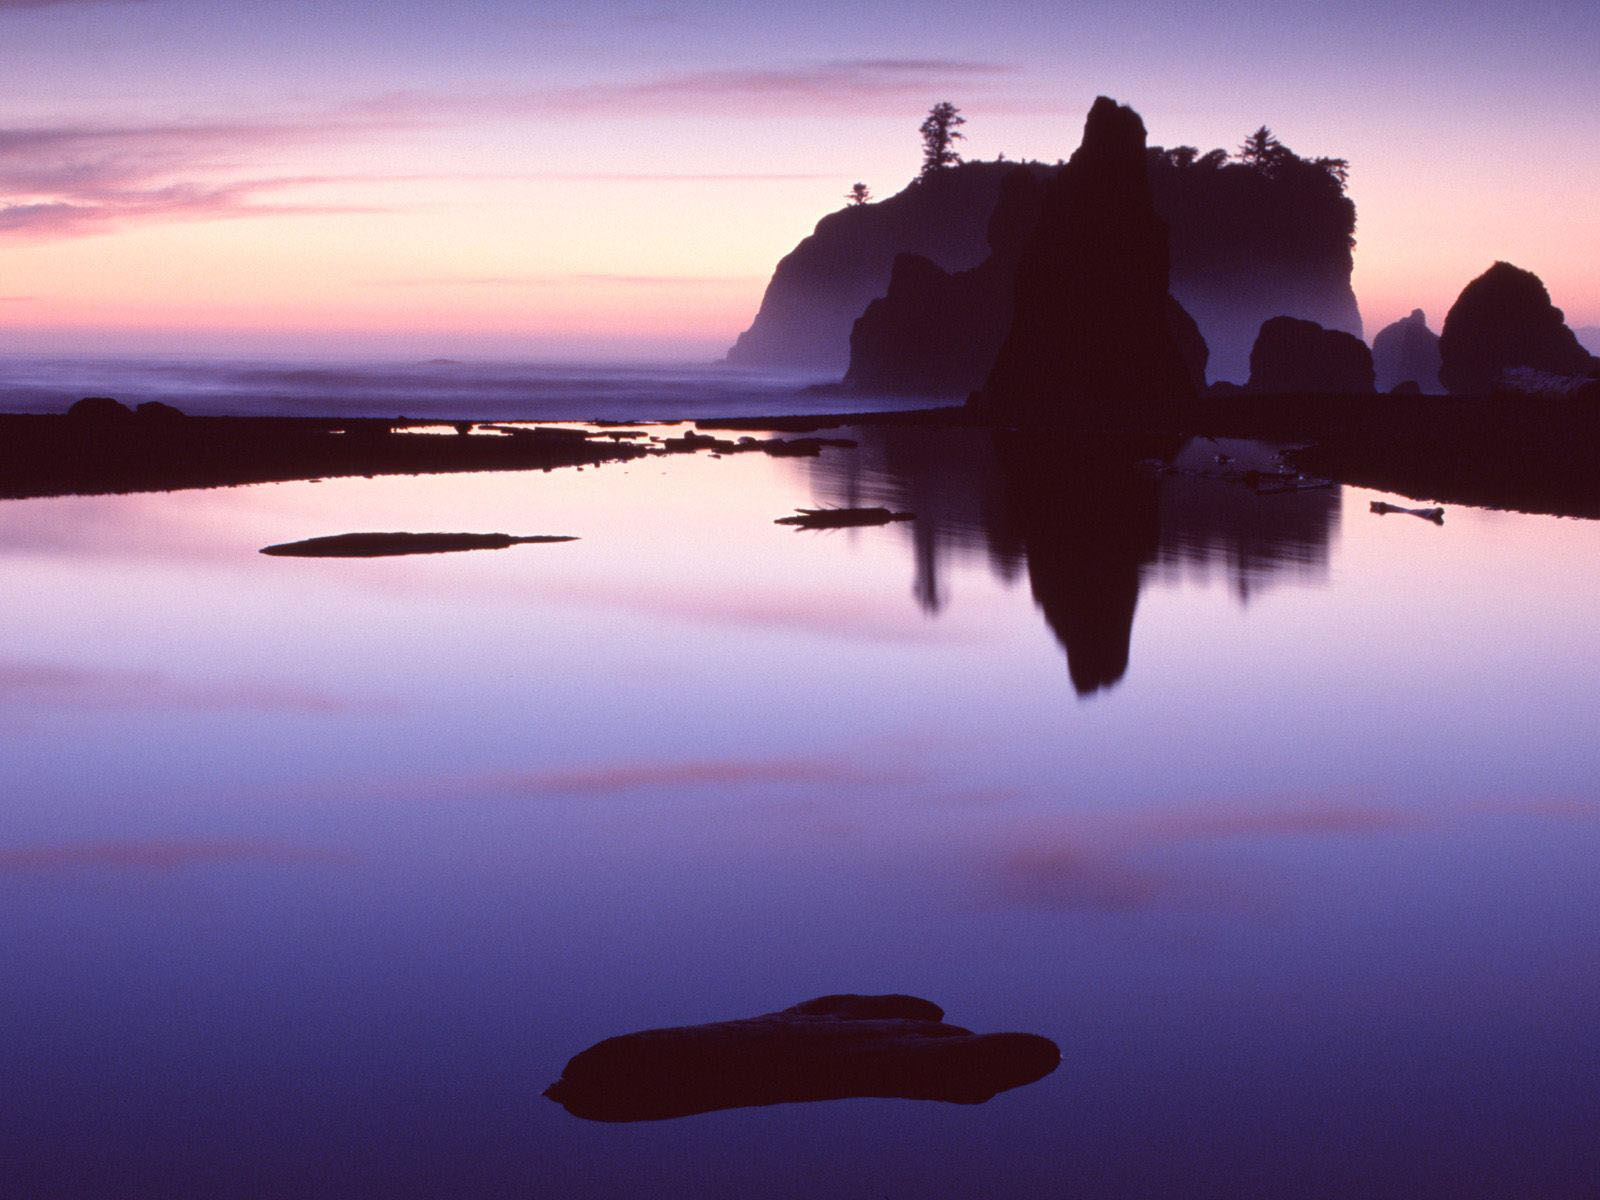 Wallpapers: Olympic National Park Wallpapers